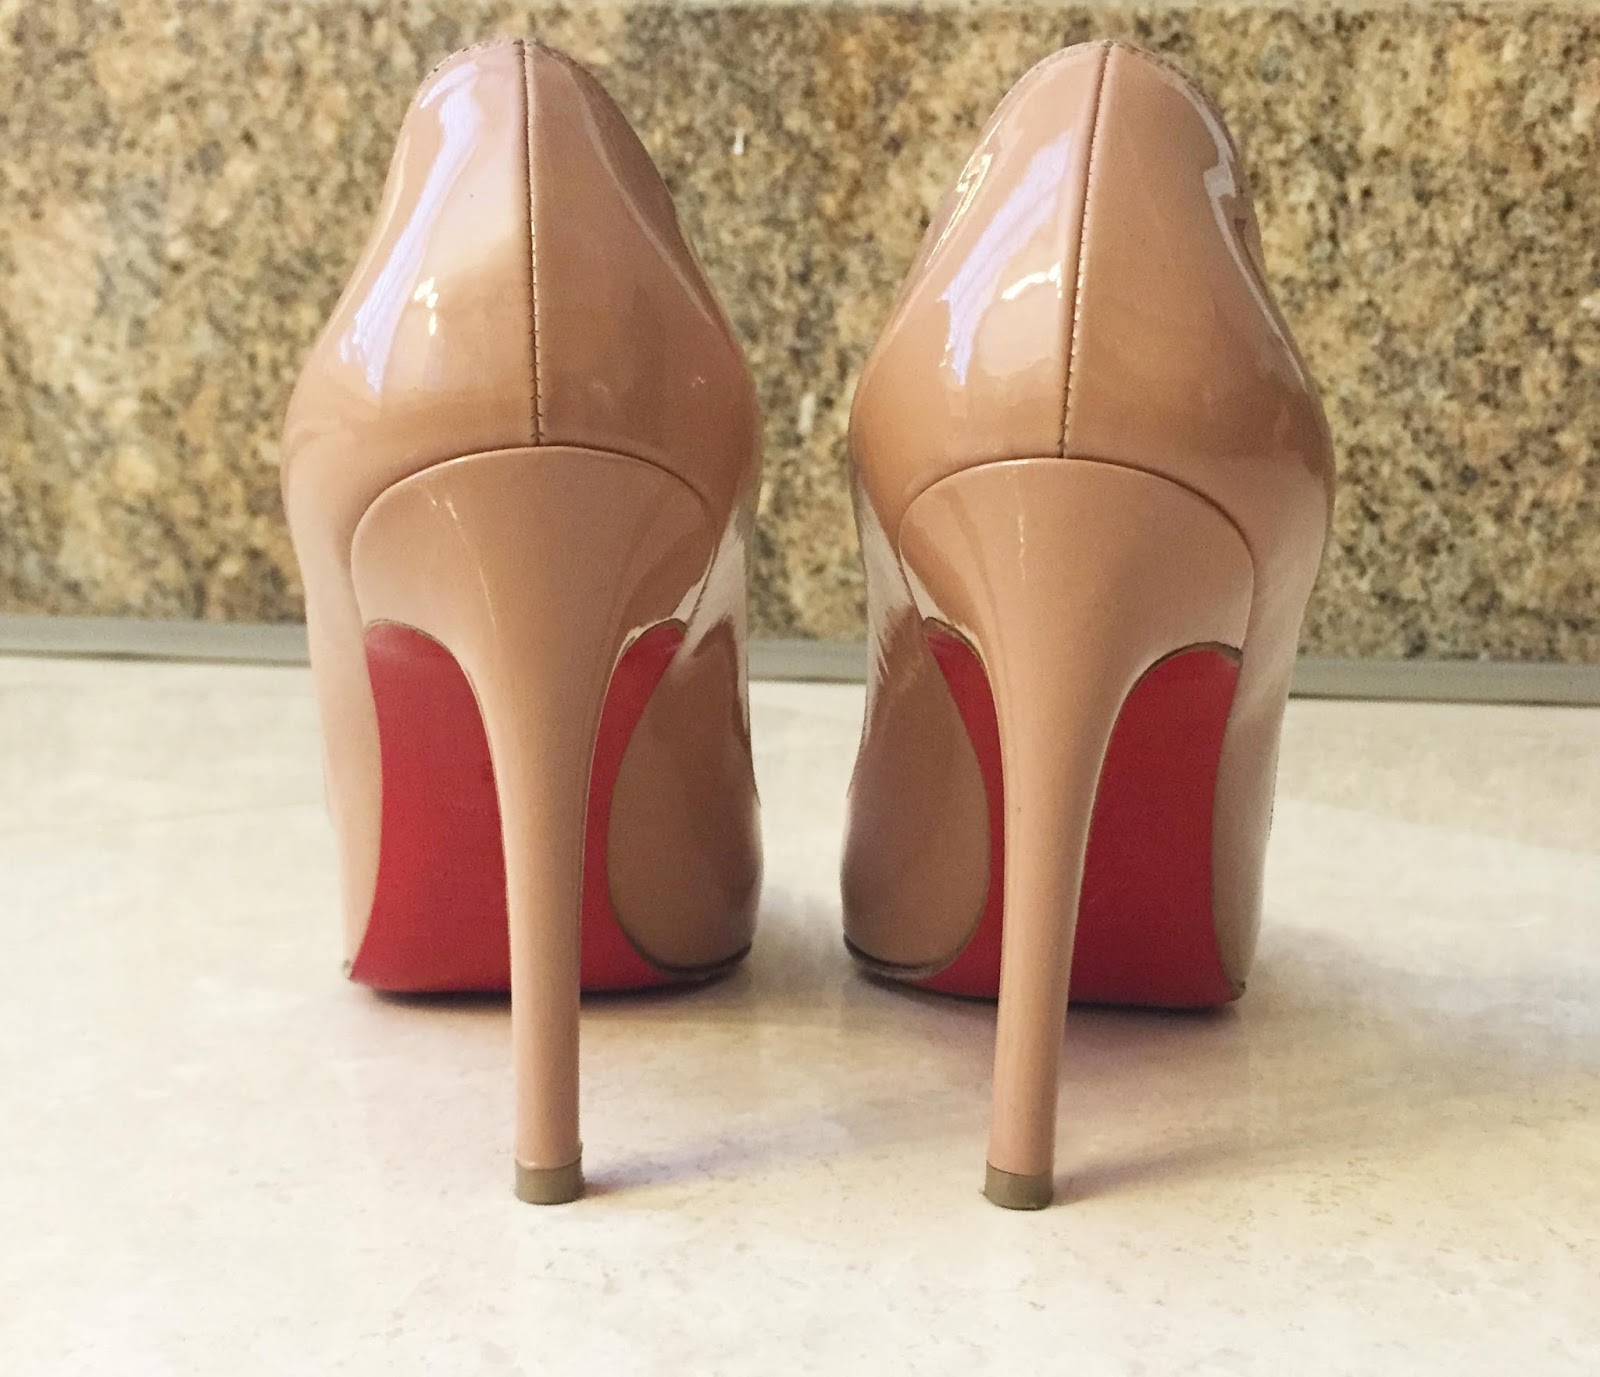 ca7d5c6a114 My Superficial Endeavors  Christian Louboutin Pigalle 100